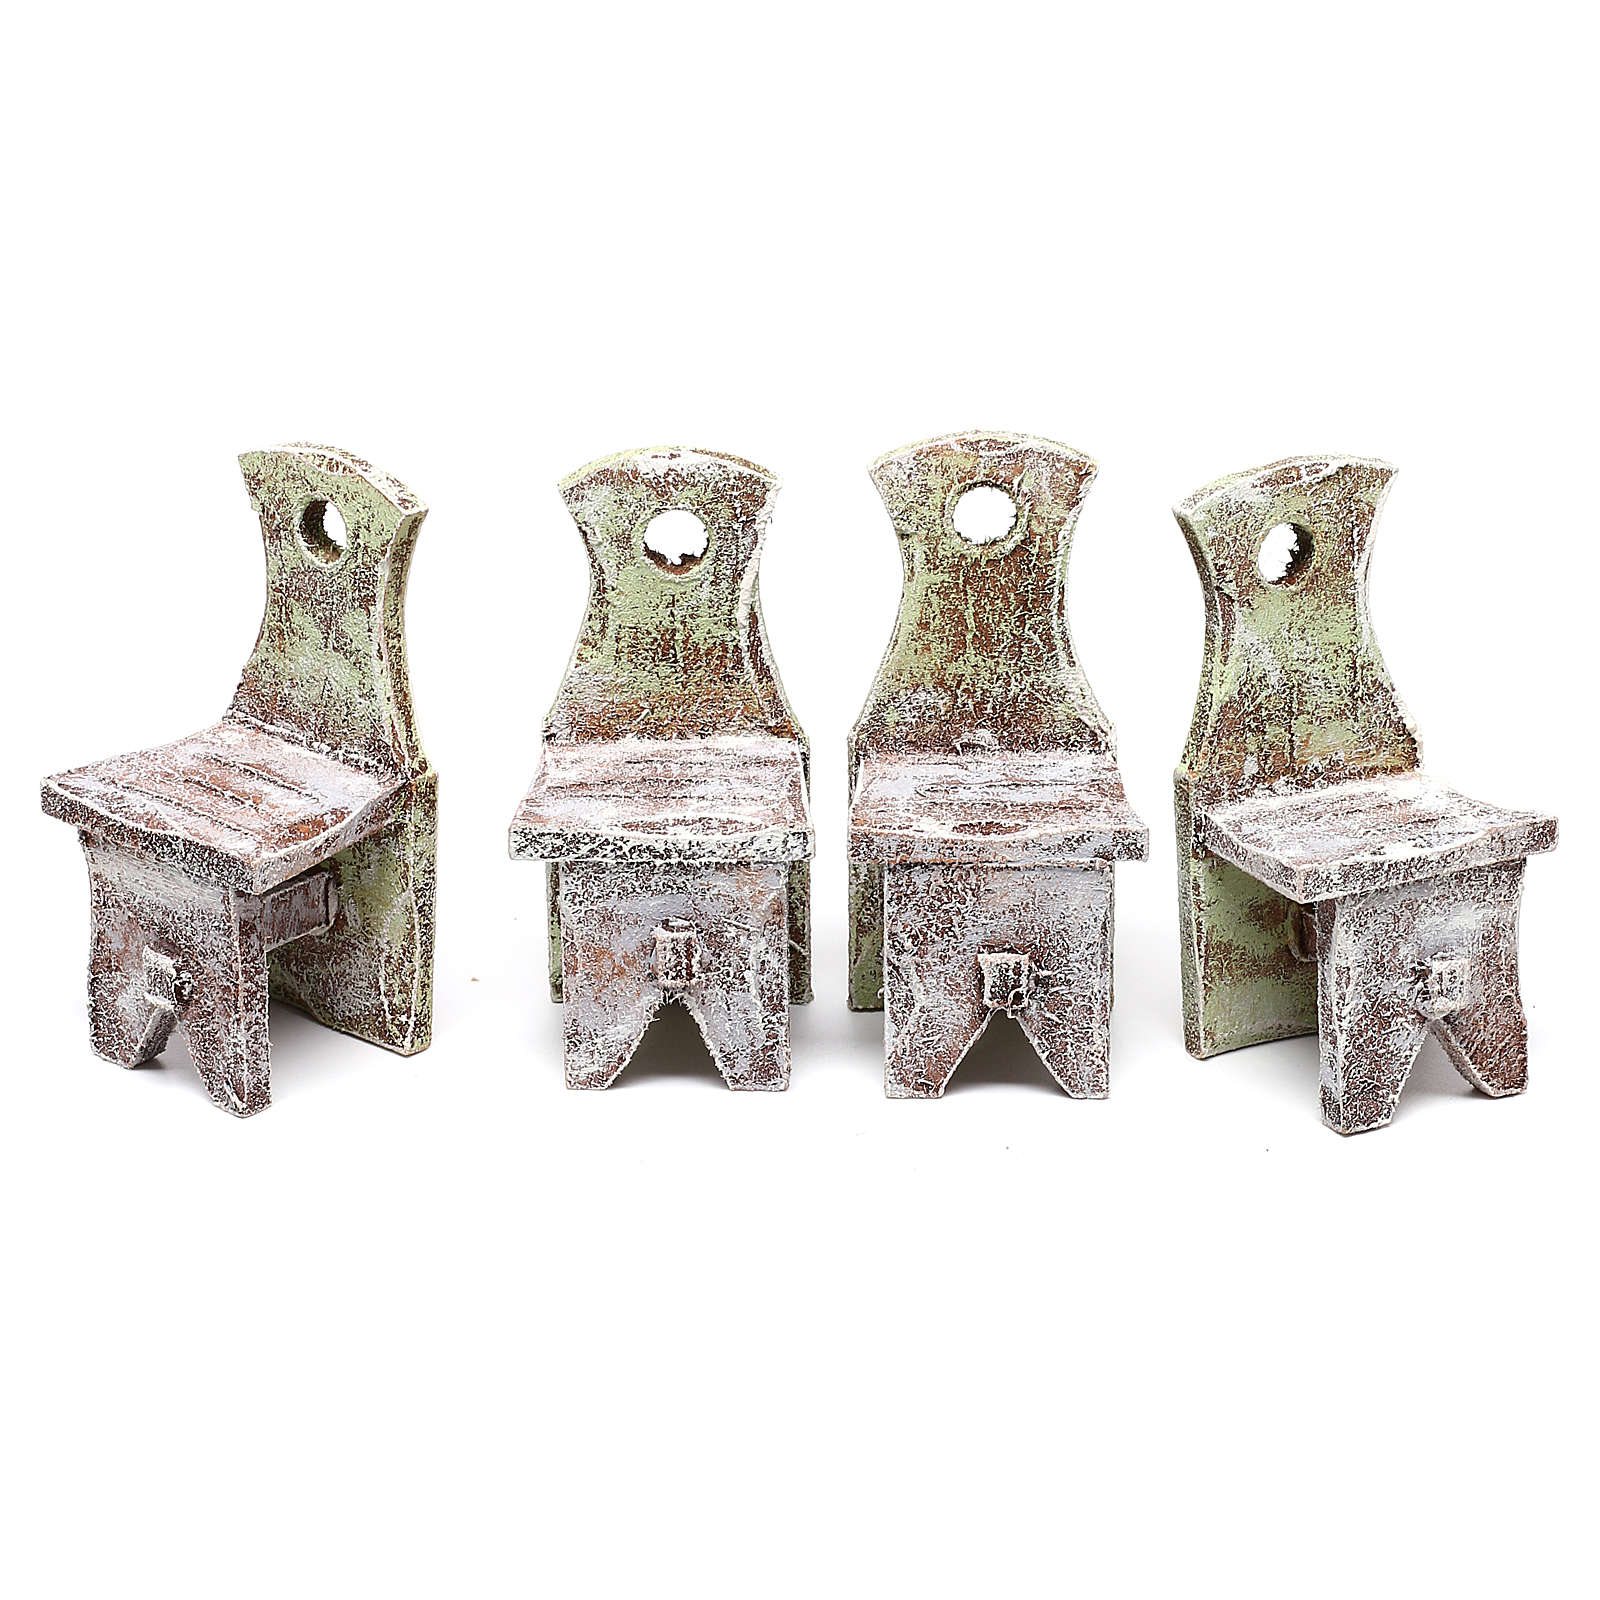 Table with 4 chairs for Nativity scene of 12 cm 10x5x5 cm 4